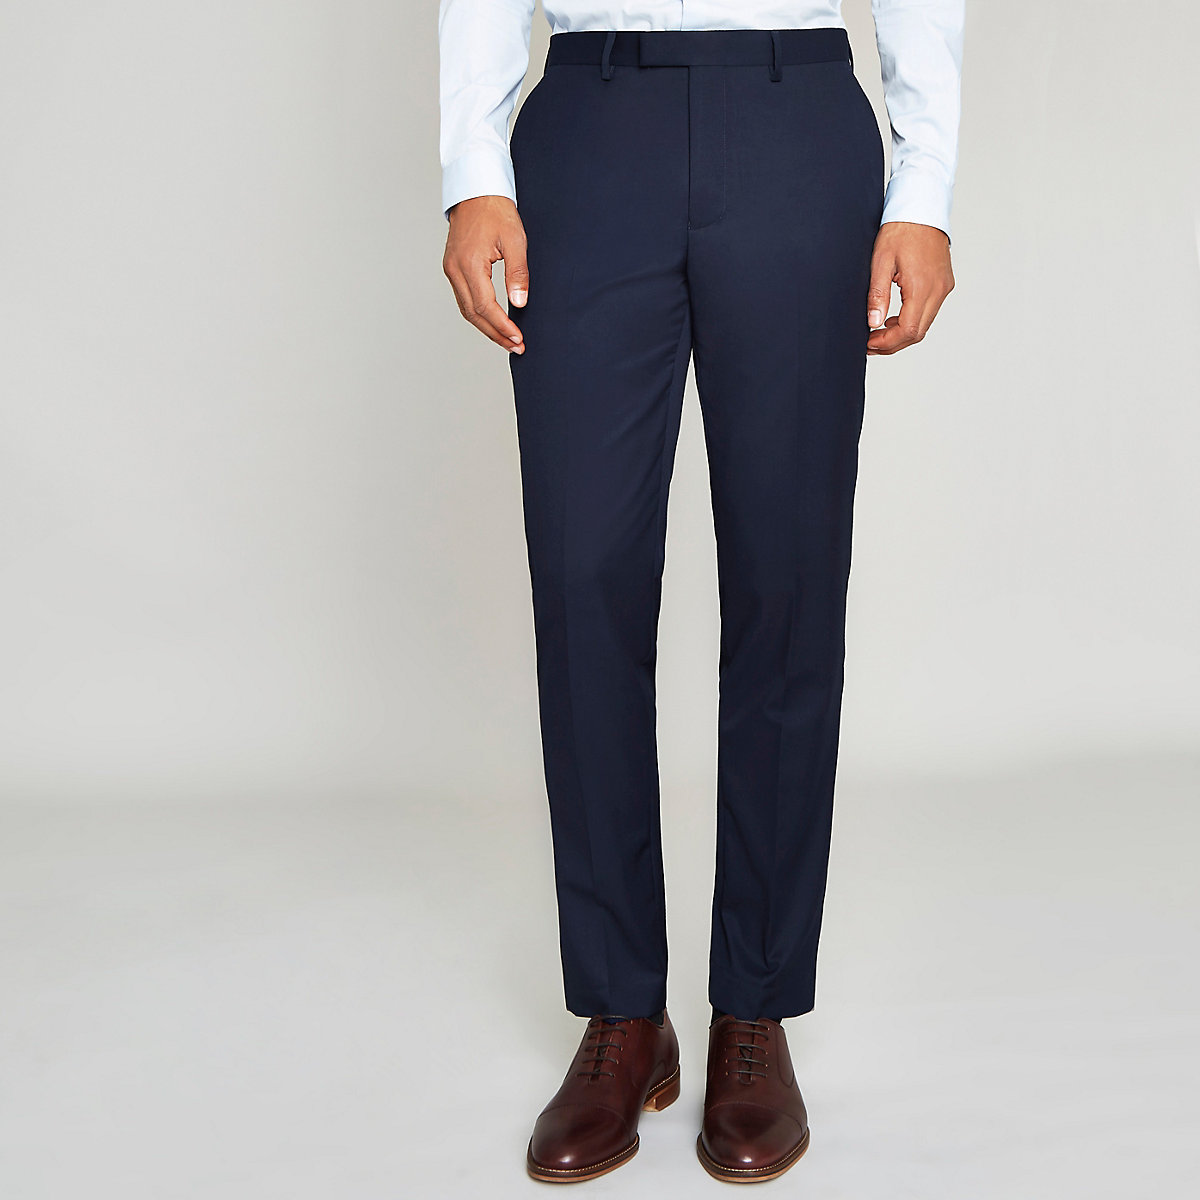 Navy blue slim fit suit trousers